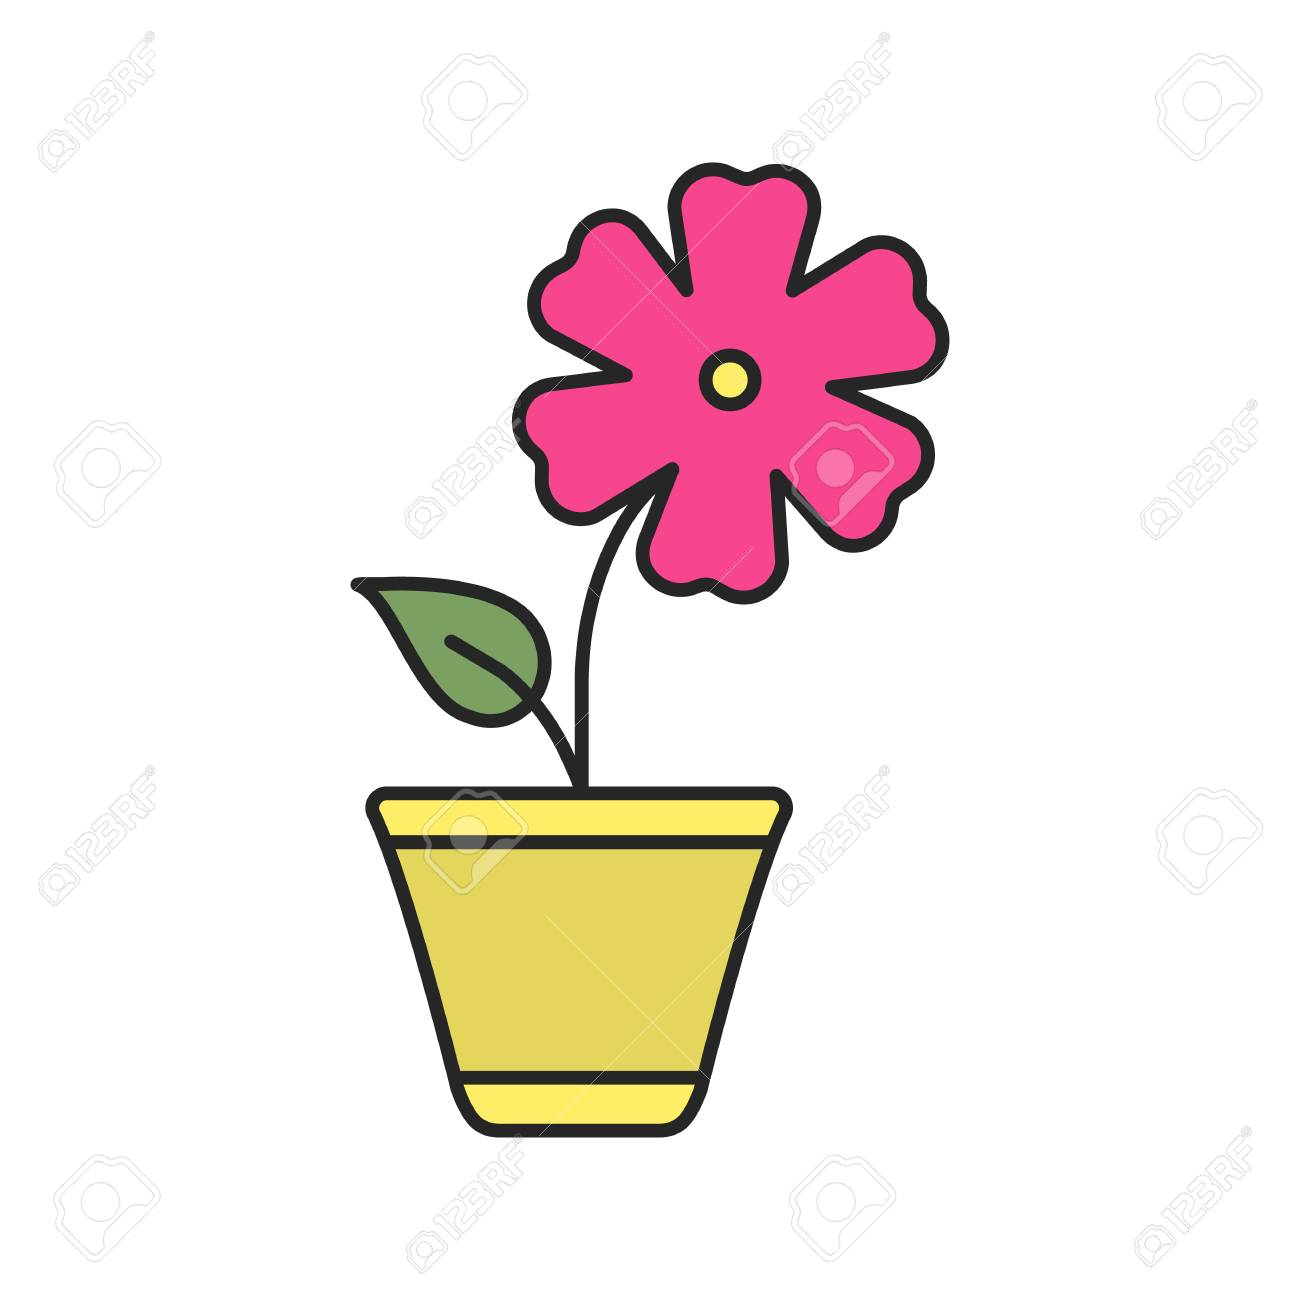 Hibiscus Flower Color Icon Isolated Vector Illustration Royalty